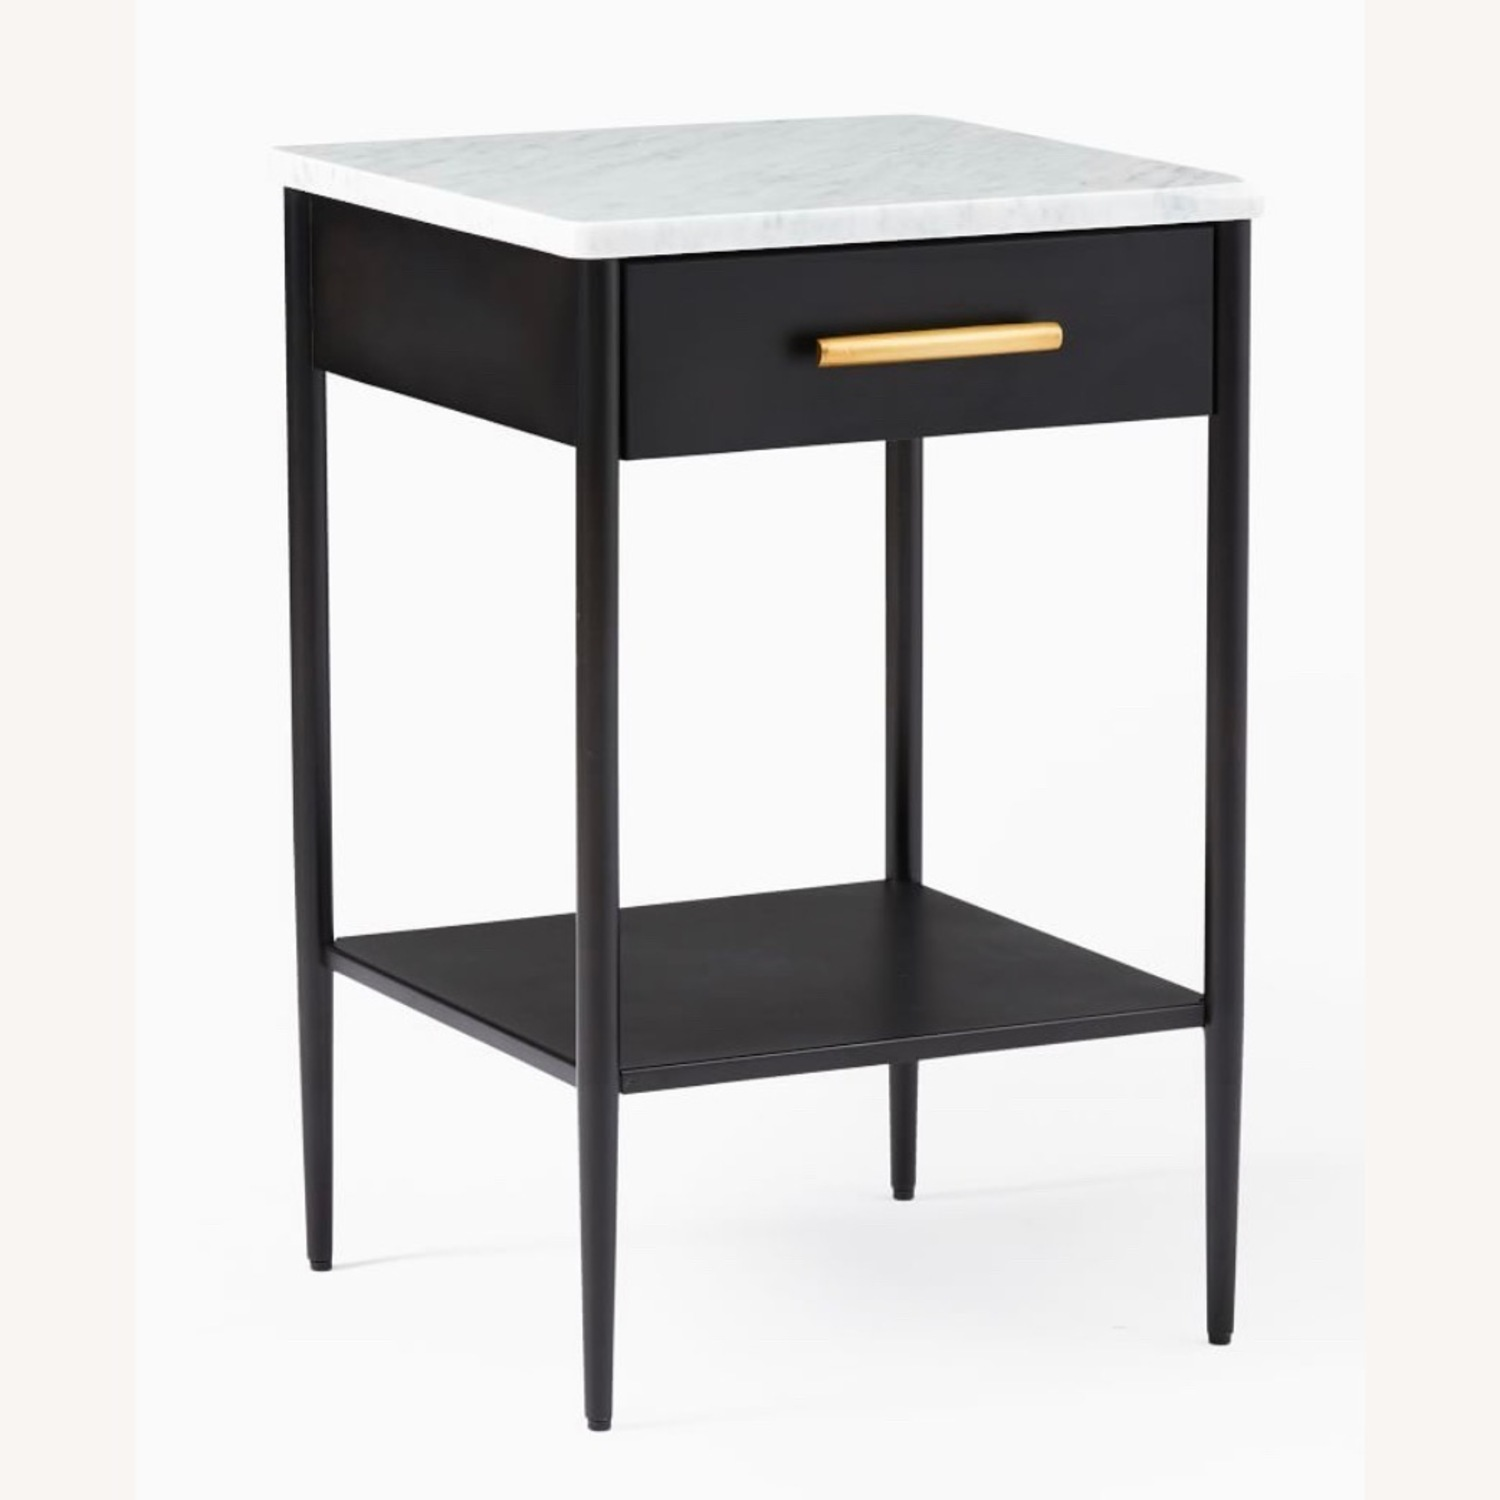 West Elm Metalwork Nightstand Marble Top - image-1